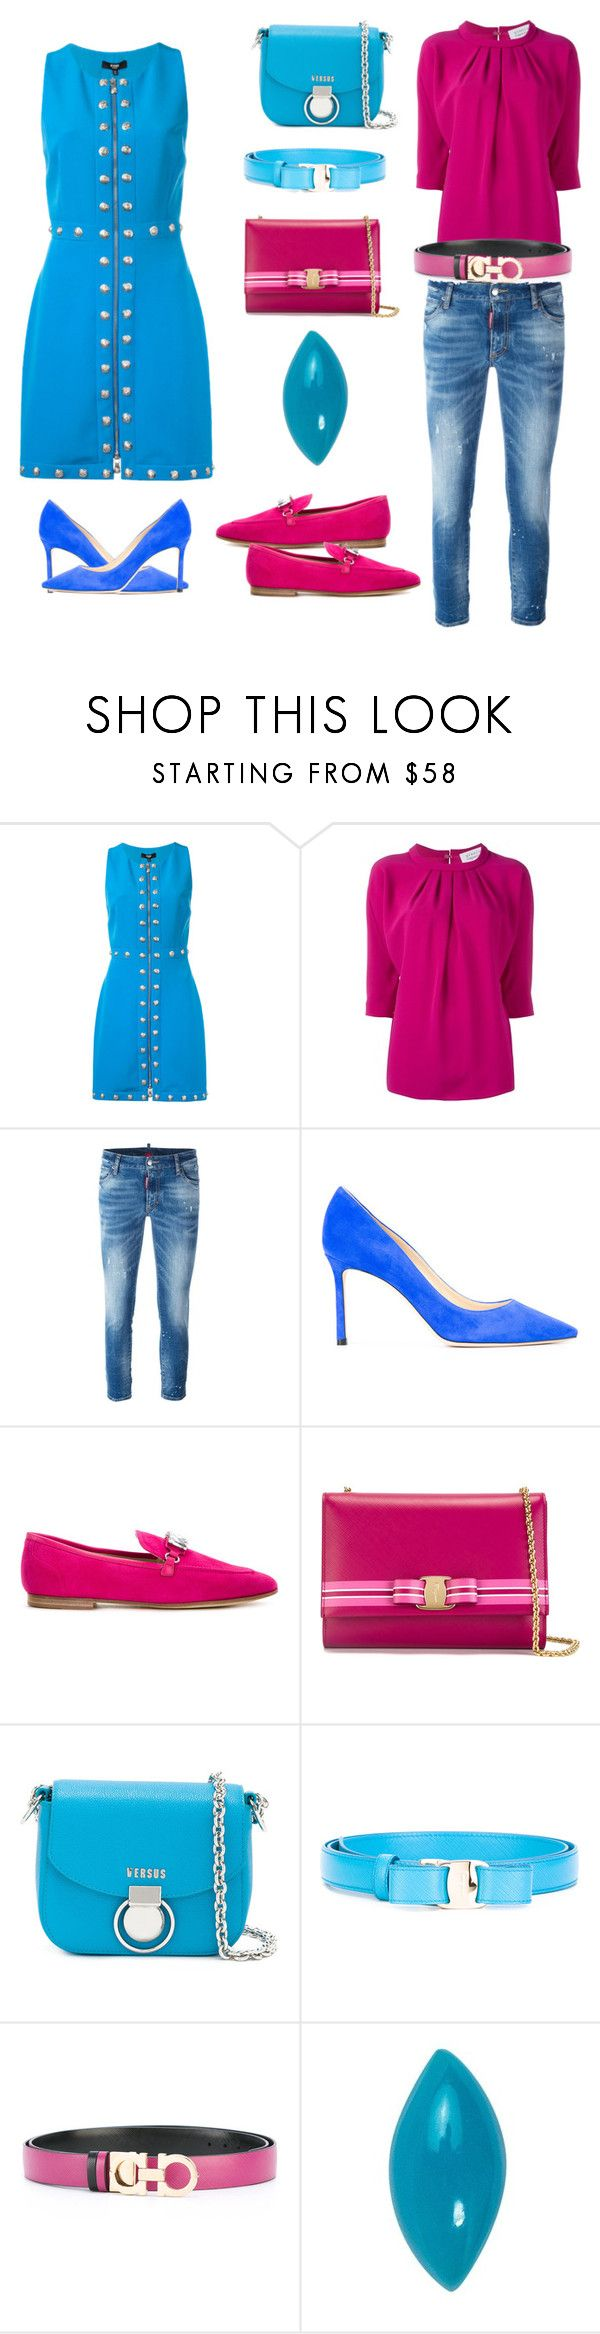 """""""Sky is blue...."""" by jamuna-kaalla ❤ liked on Polyvore featuring Versus, Gianluca Capannolo, Dsquared2, Jimmy Choo, Giuseppe Zanotti, Salvatore Ferragamo, Loquet and vintage"""